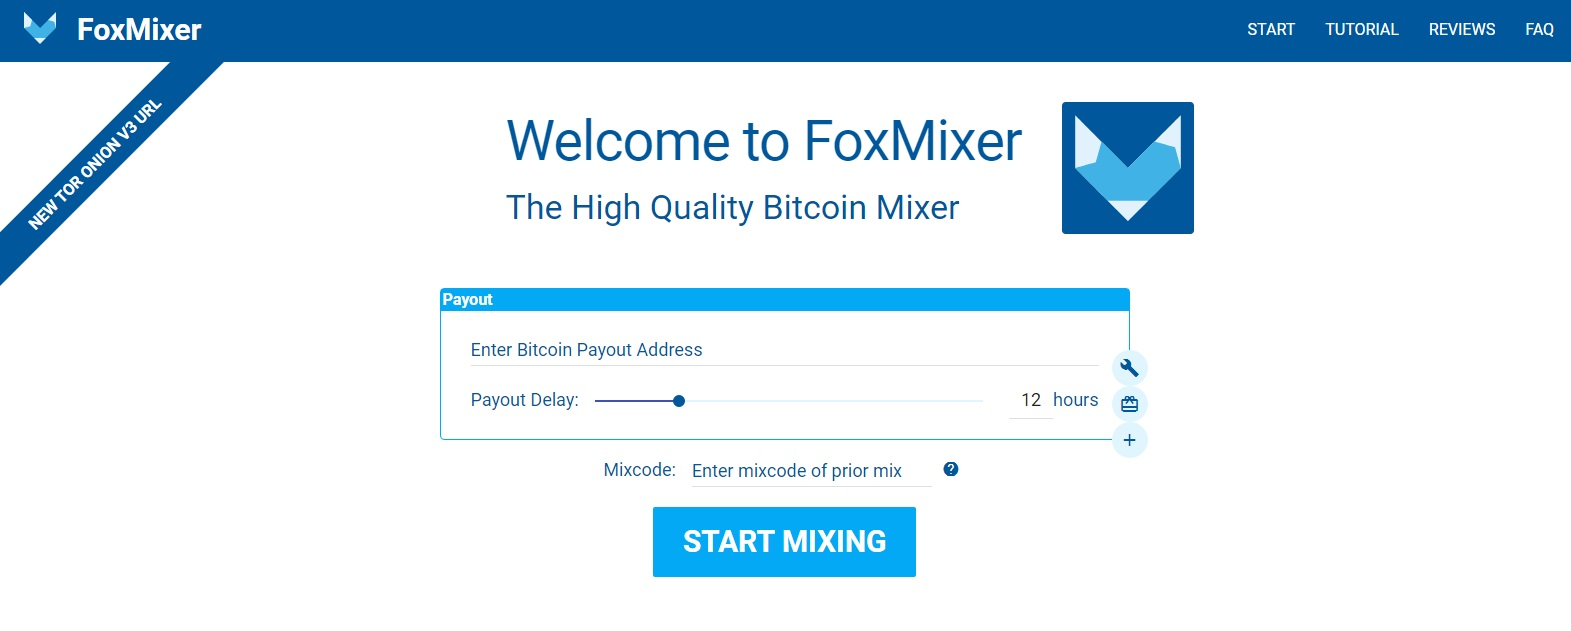 FoxMixer is one of the best bitcoin mixers in the market.